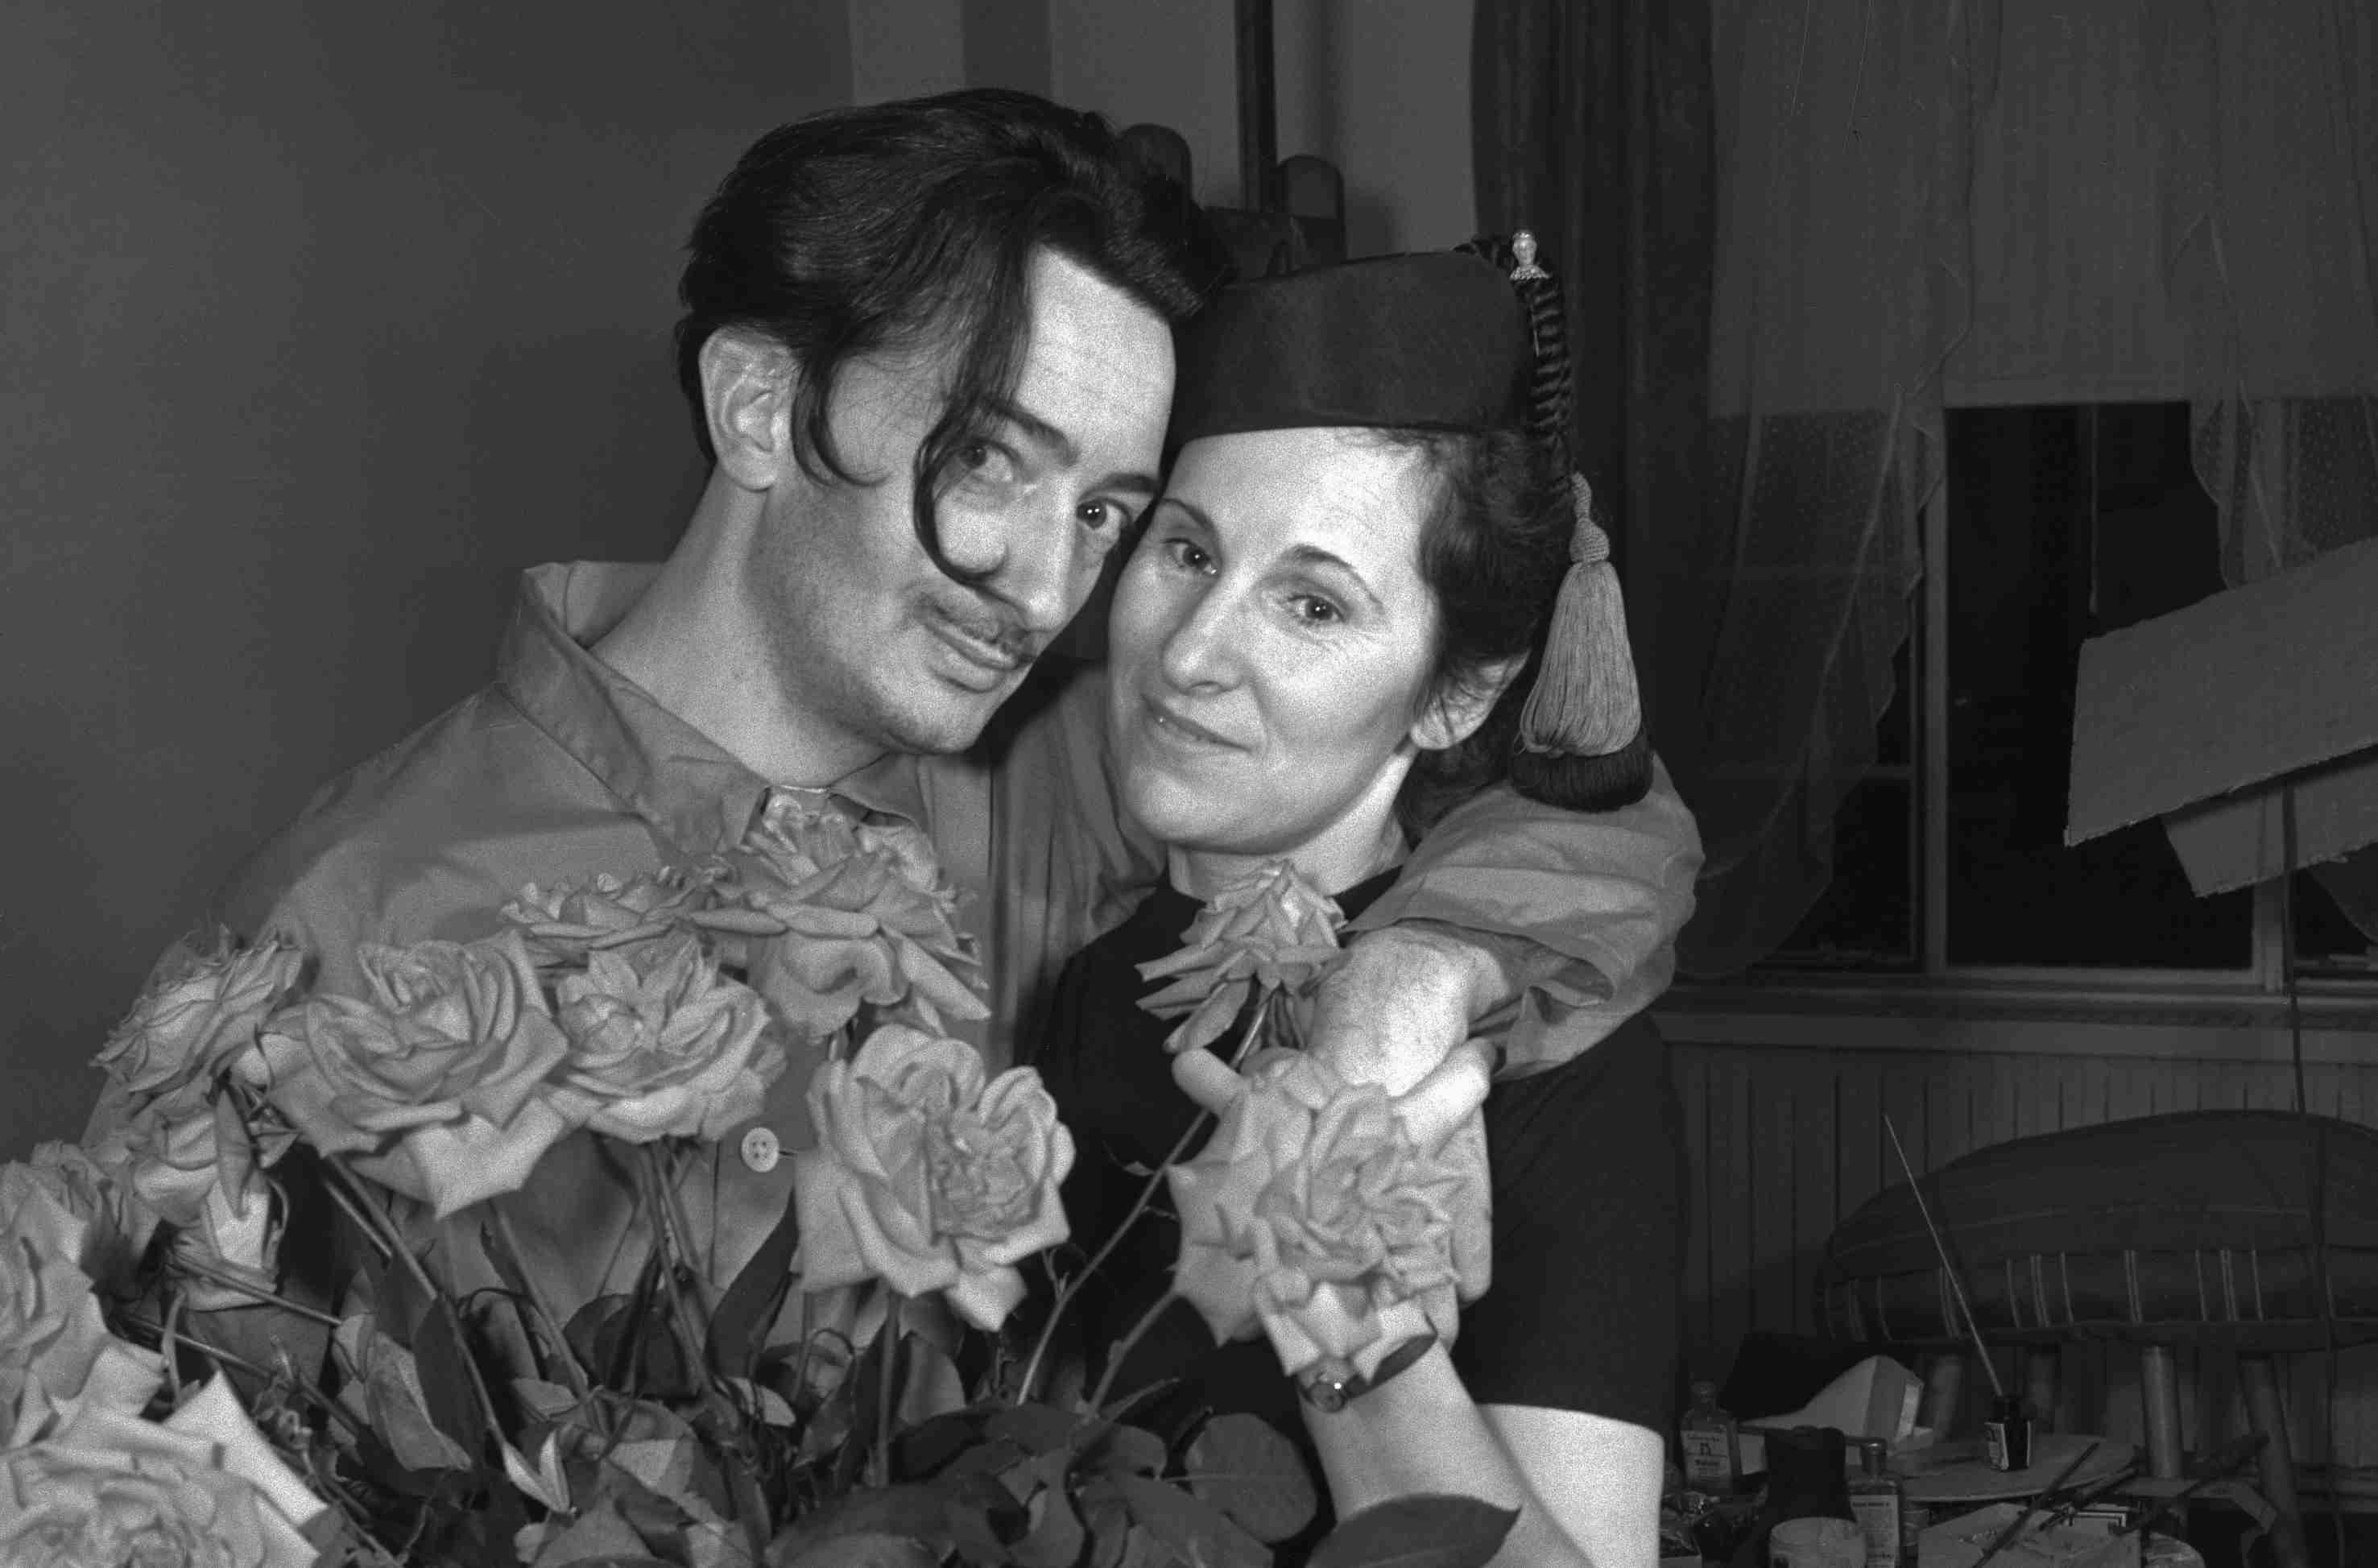 Salvador Dalí and his wife embrace behind a bouquet of roses